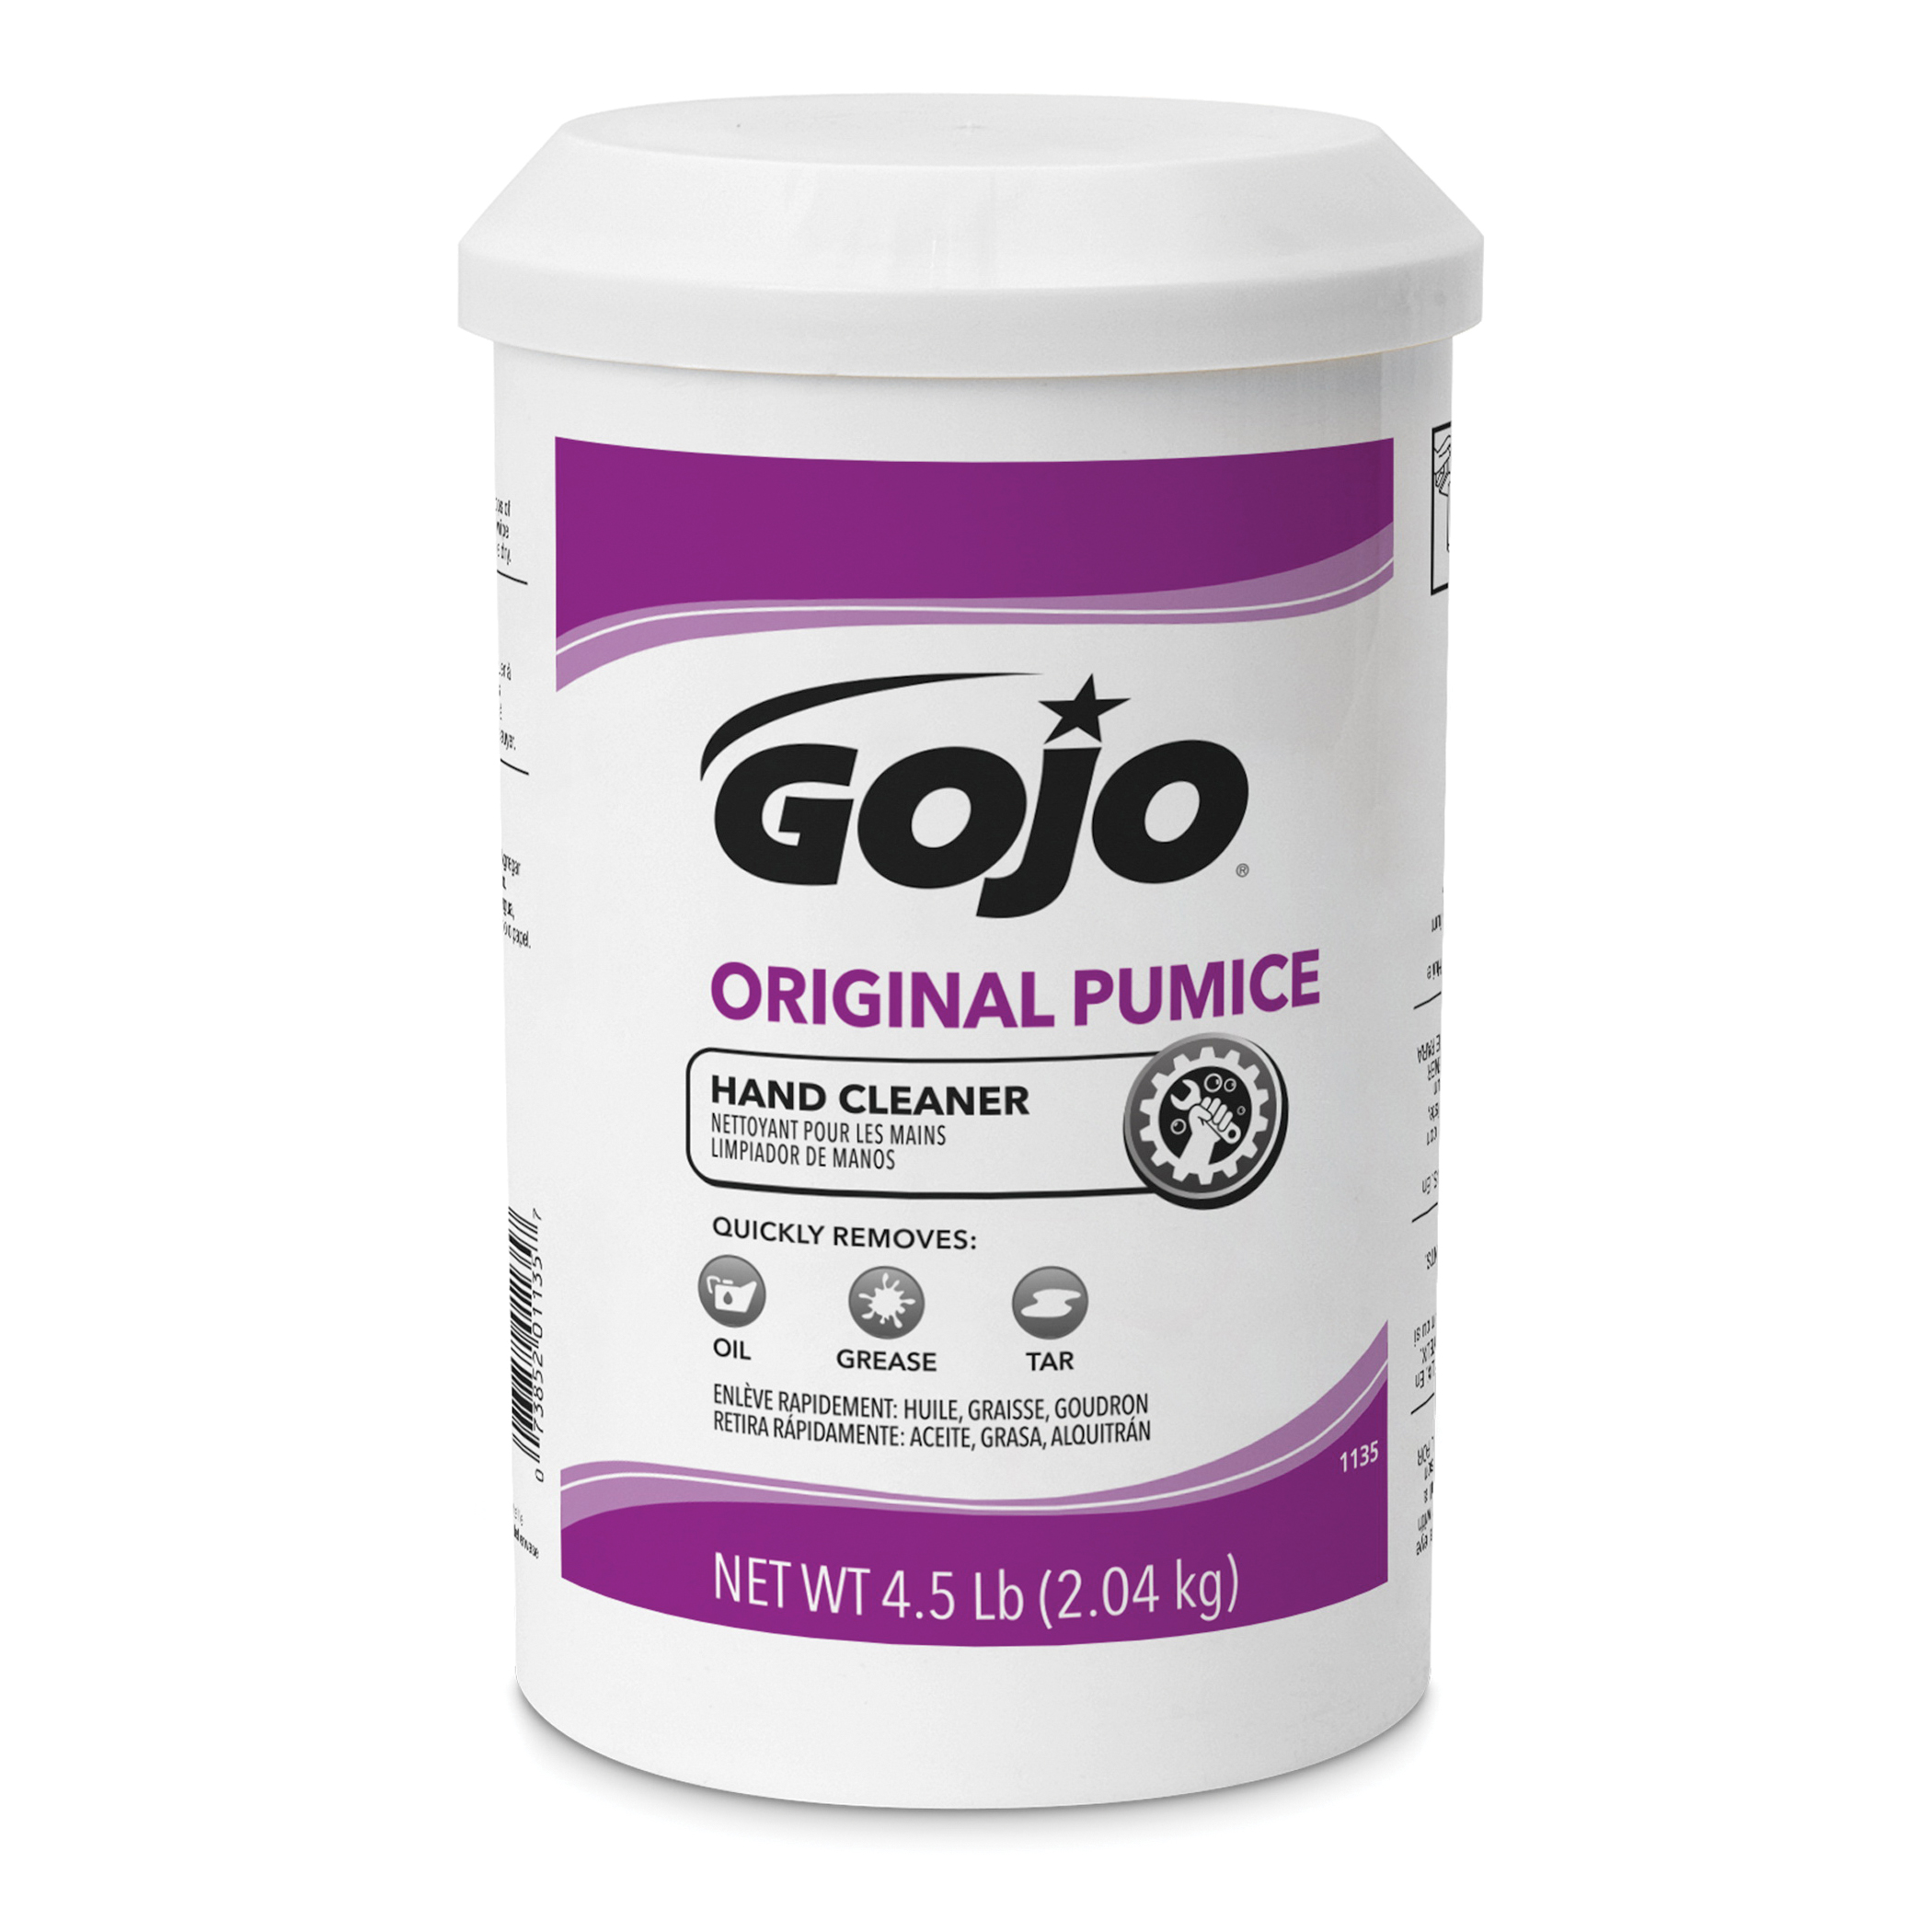 GOJO® 1135-06 Original Pumice Hand Cleaner With Fine Italian Pumice Scrubbers, 4 lb Nominal, Cartridge/Dispenser Refill Package, Creamy Form, Citrus Odor/Scent, Opaque/Yellow